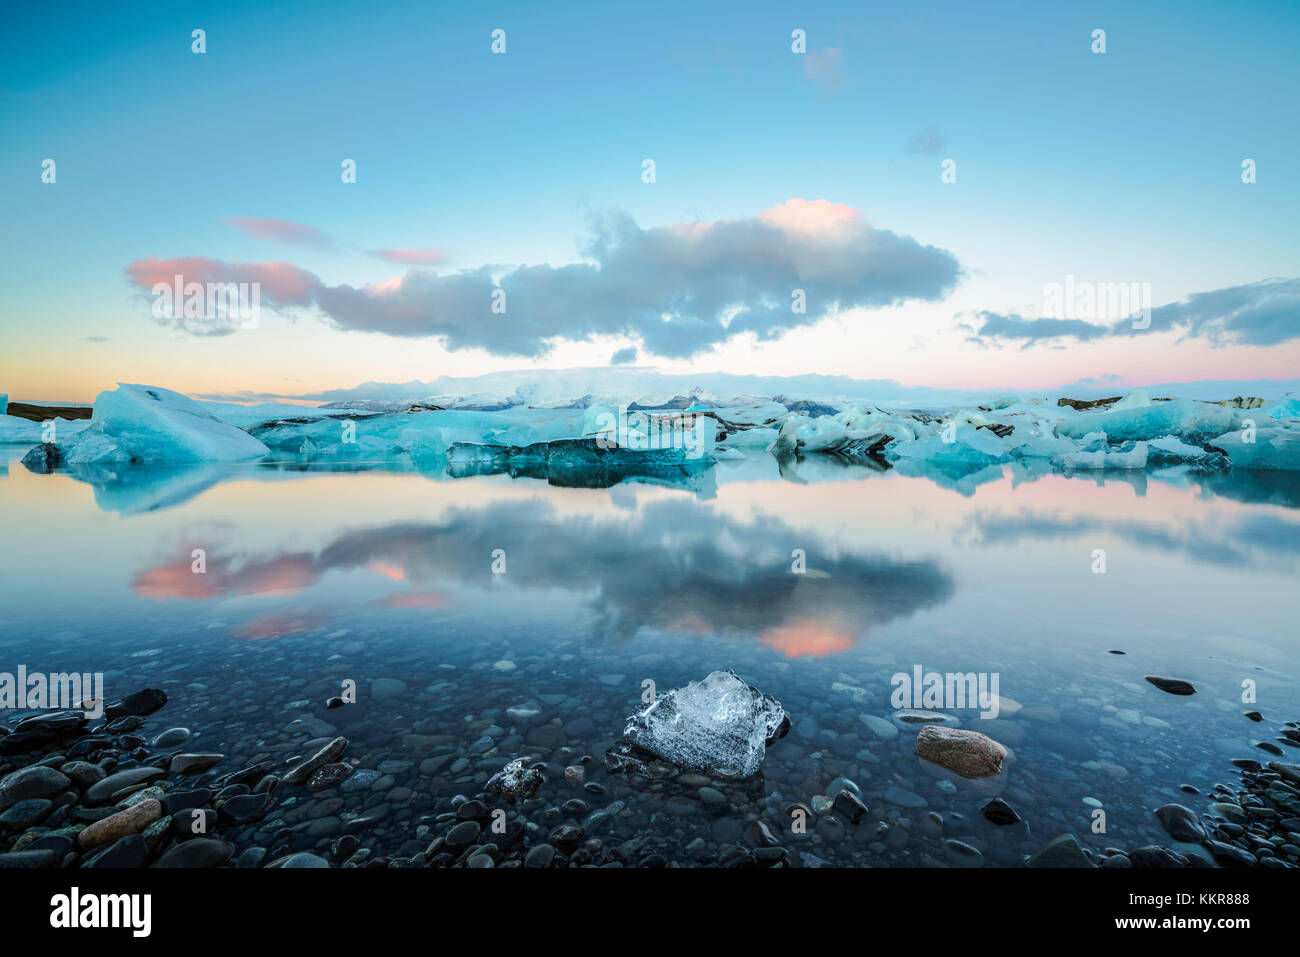 Jokulsarlon, Eastern Iceland, Iceland, Northern Europe. The iconic little icebergs lined in the glacier lagoon during a sunrise Stock Photo